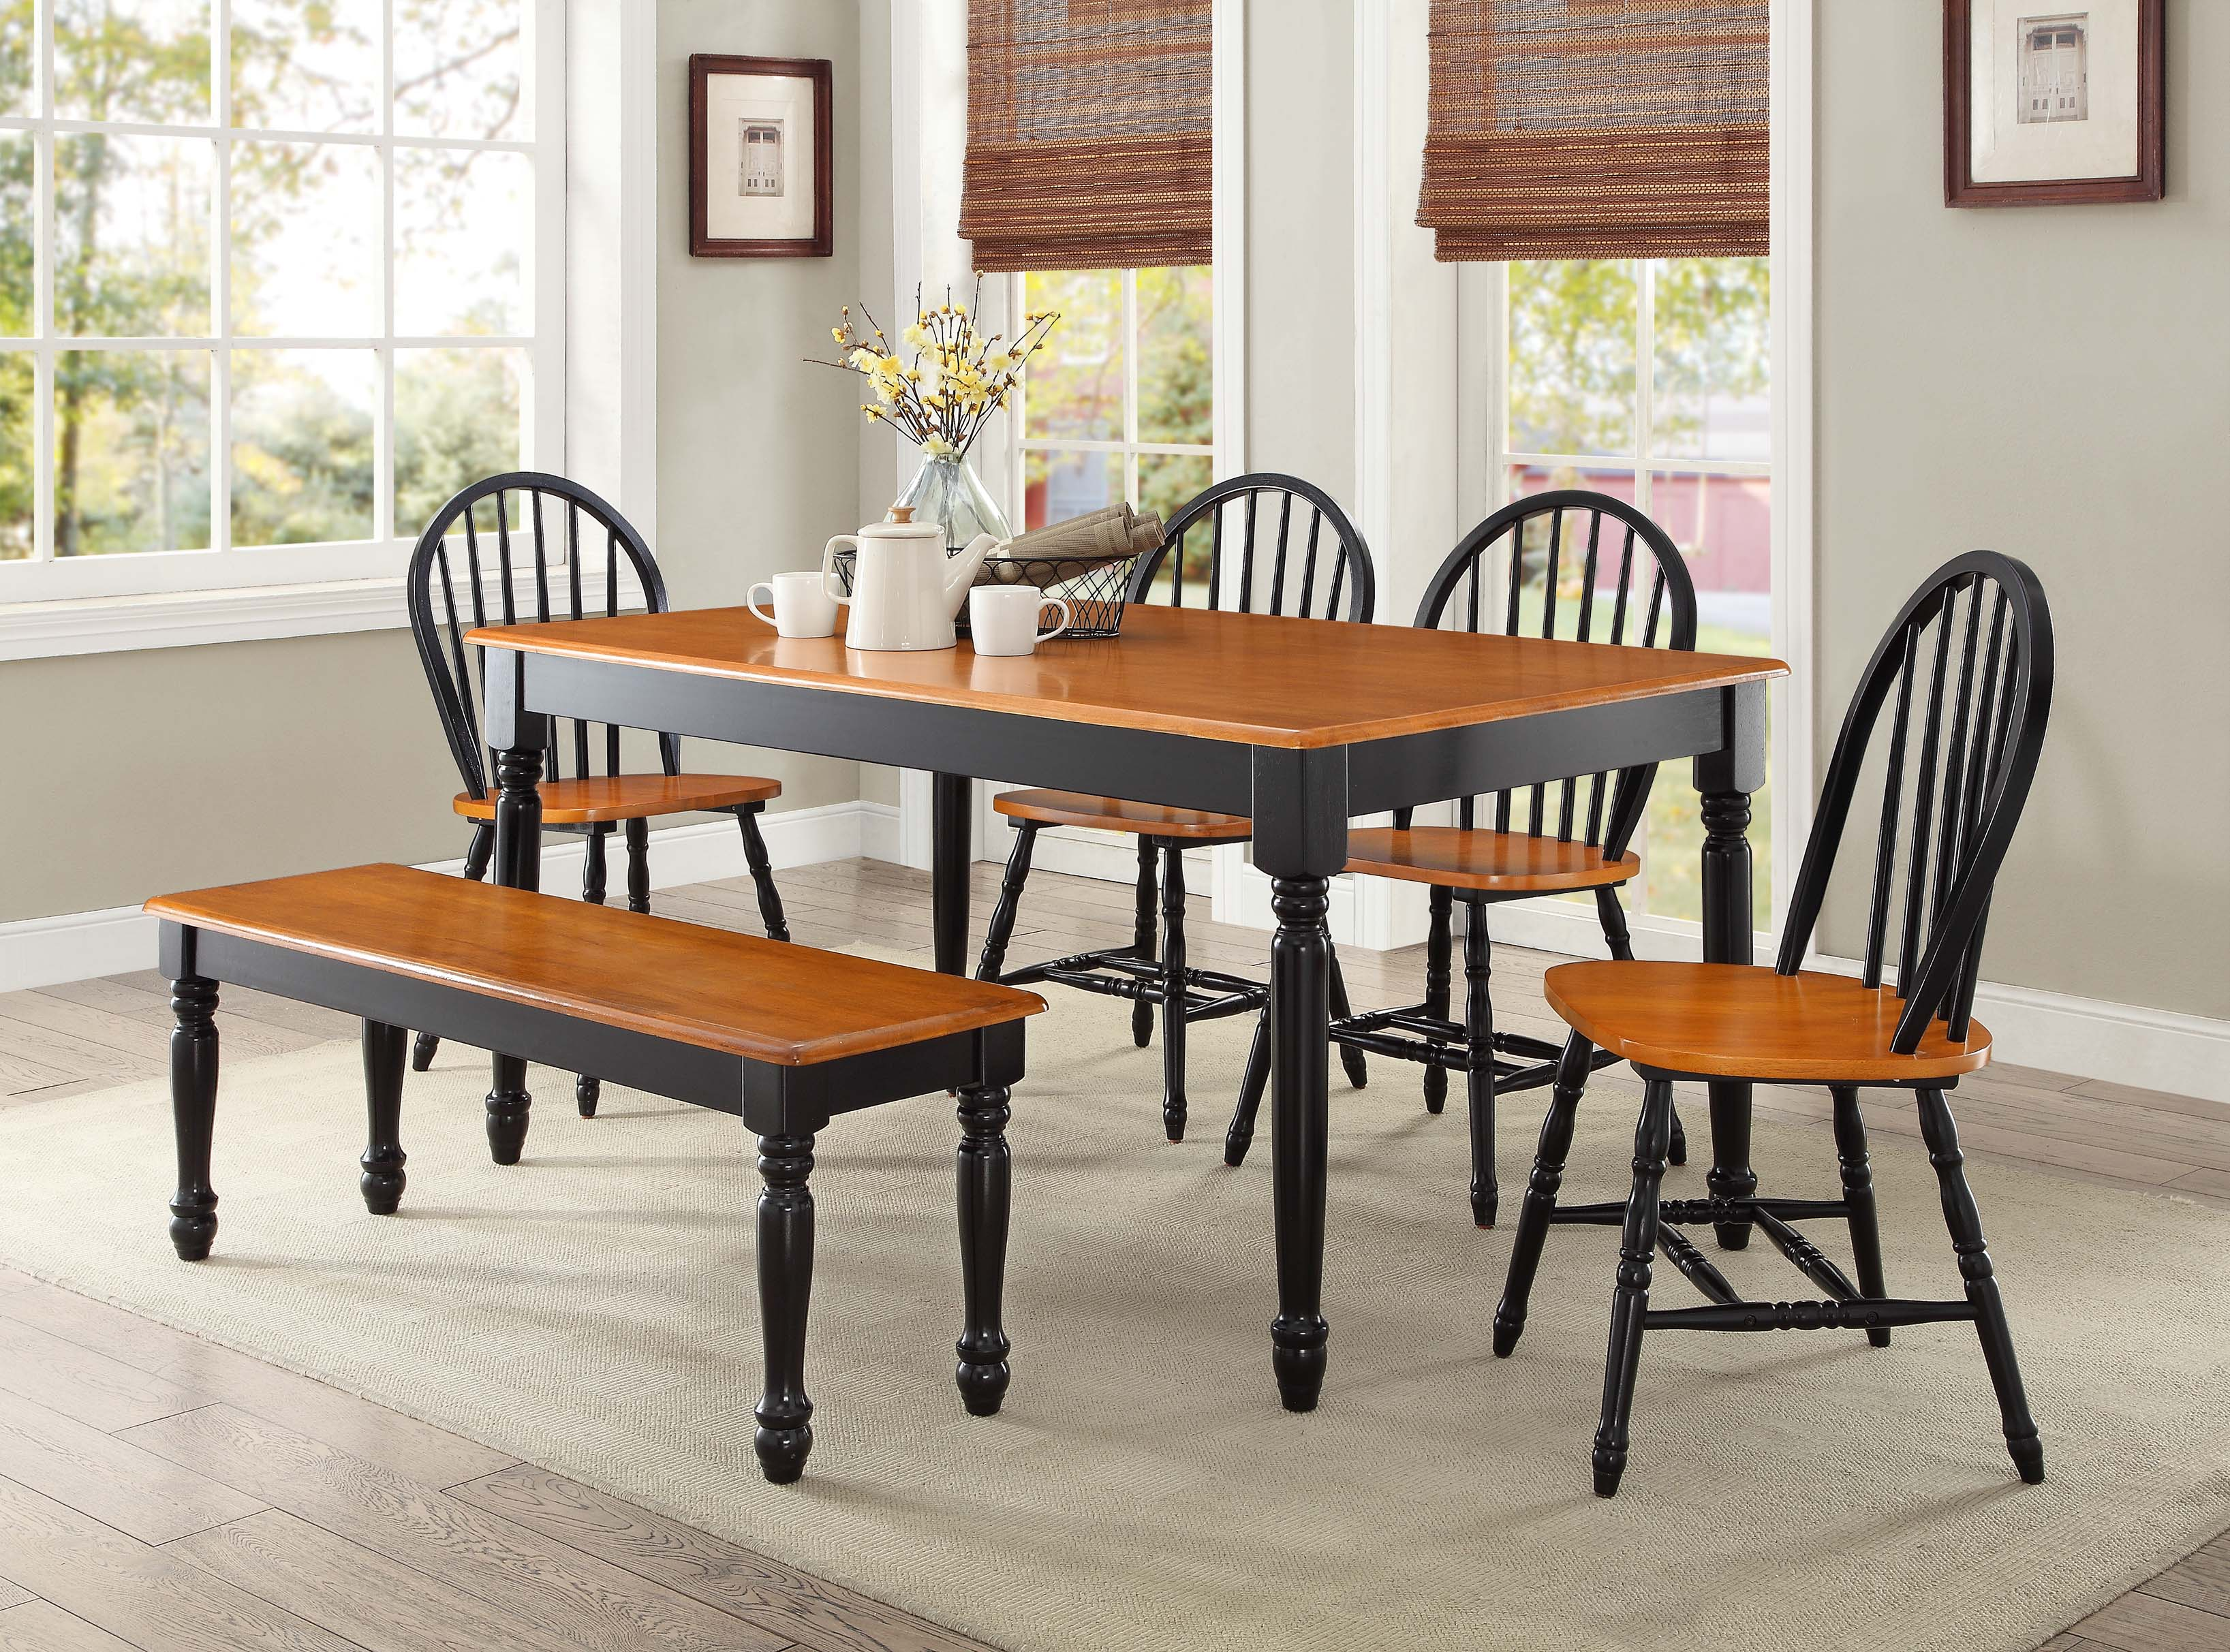 Dining Room Table Sets Unique Kitchen & Dining Furniture  Walmart Design Inspiration